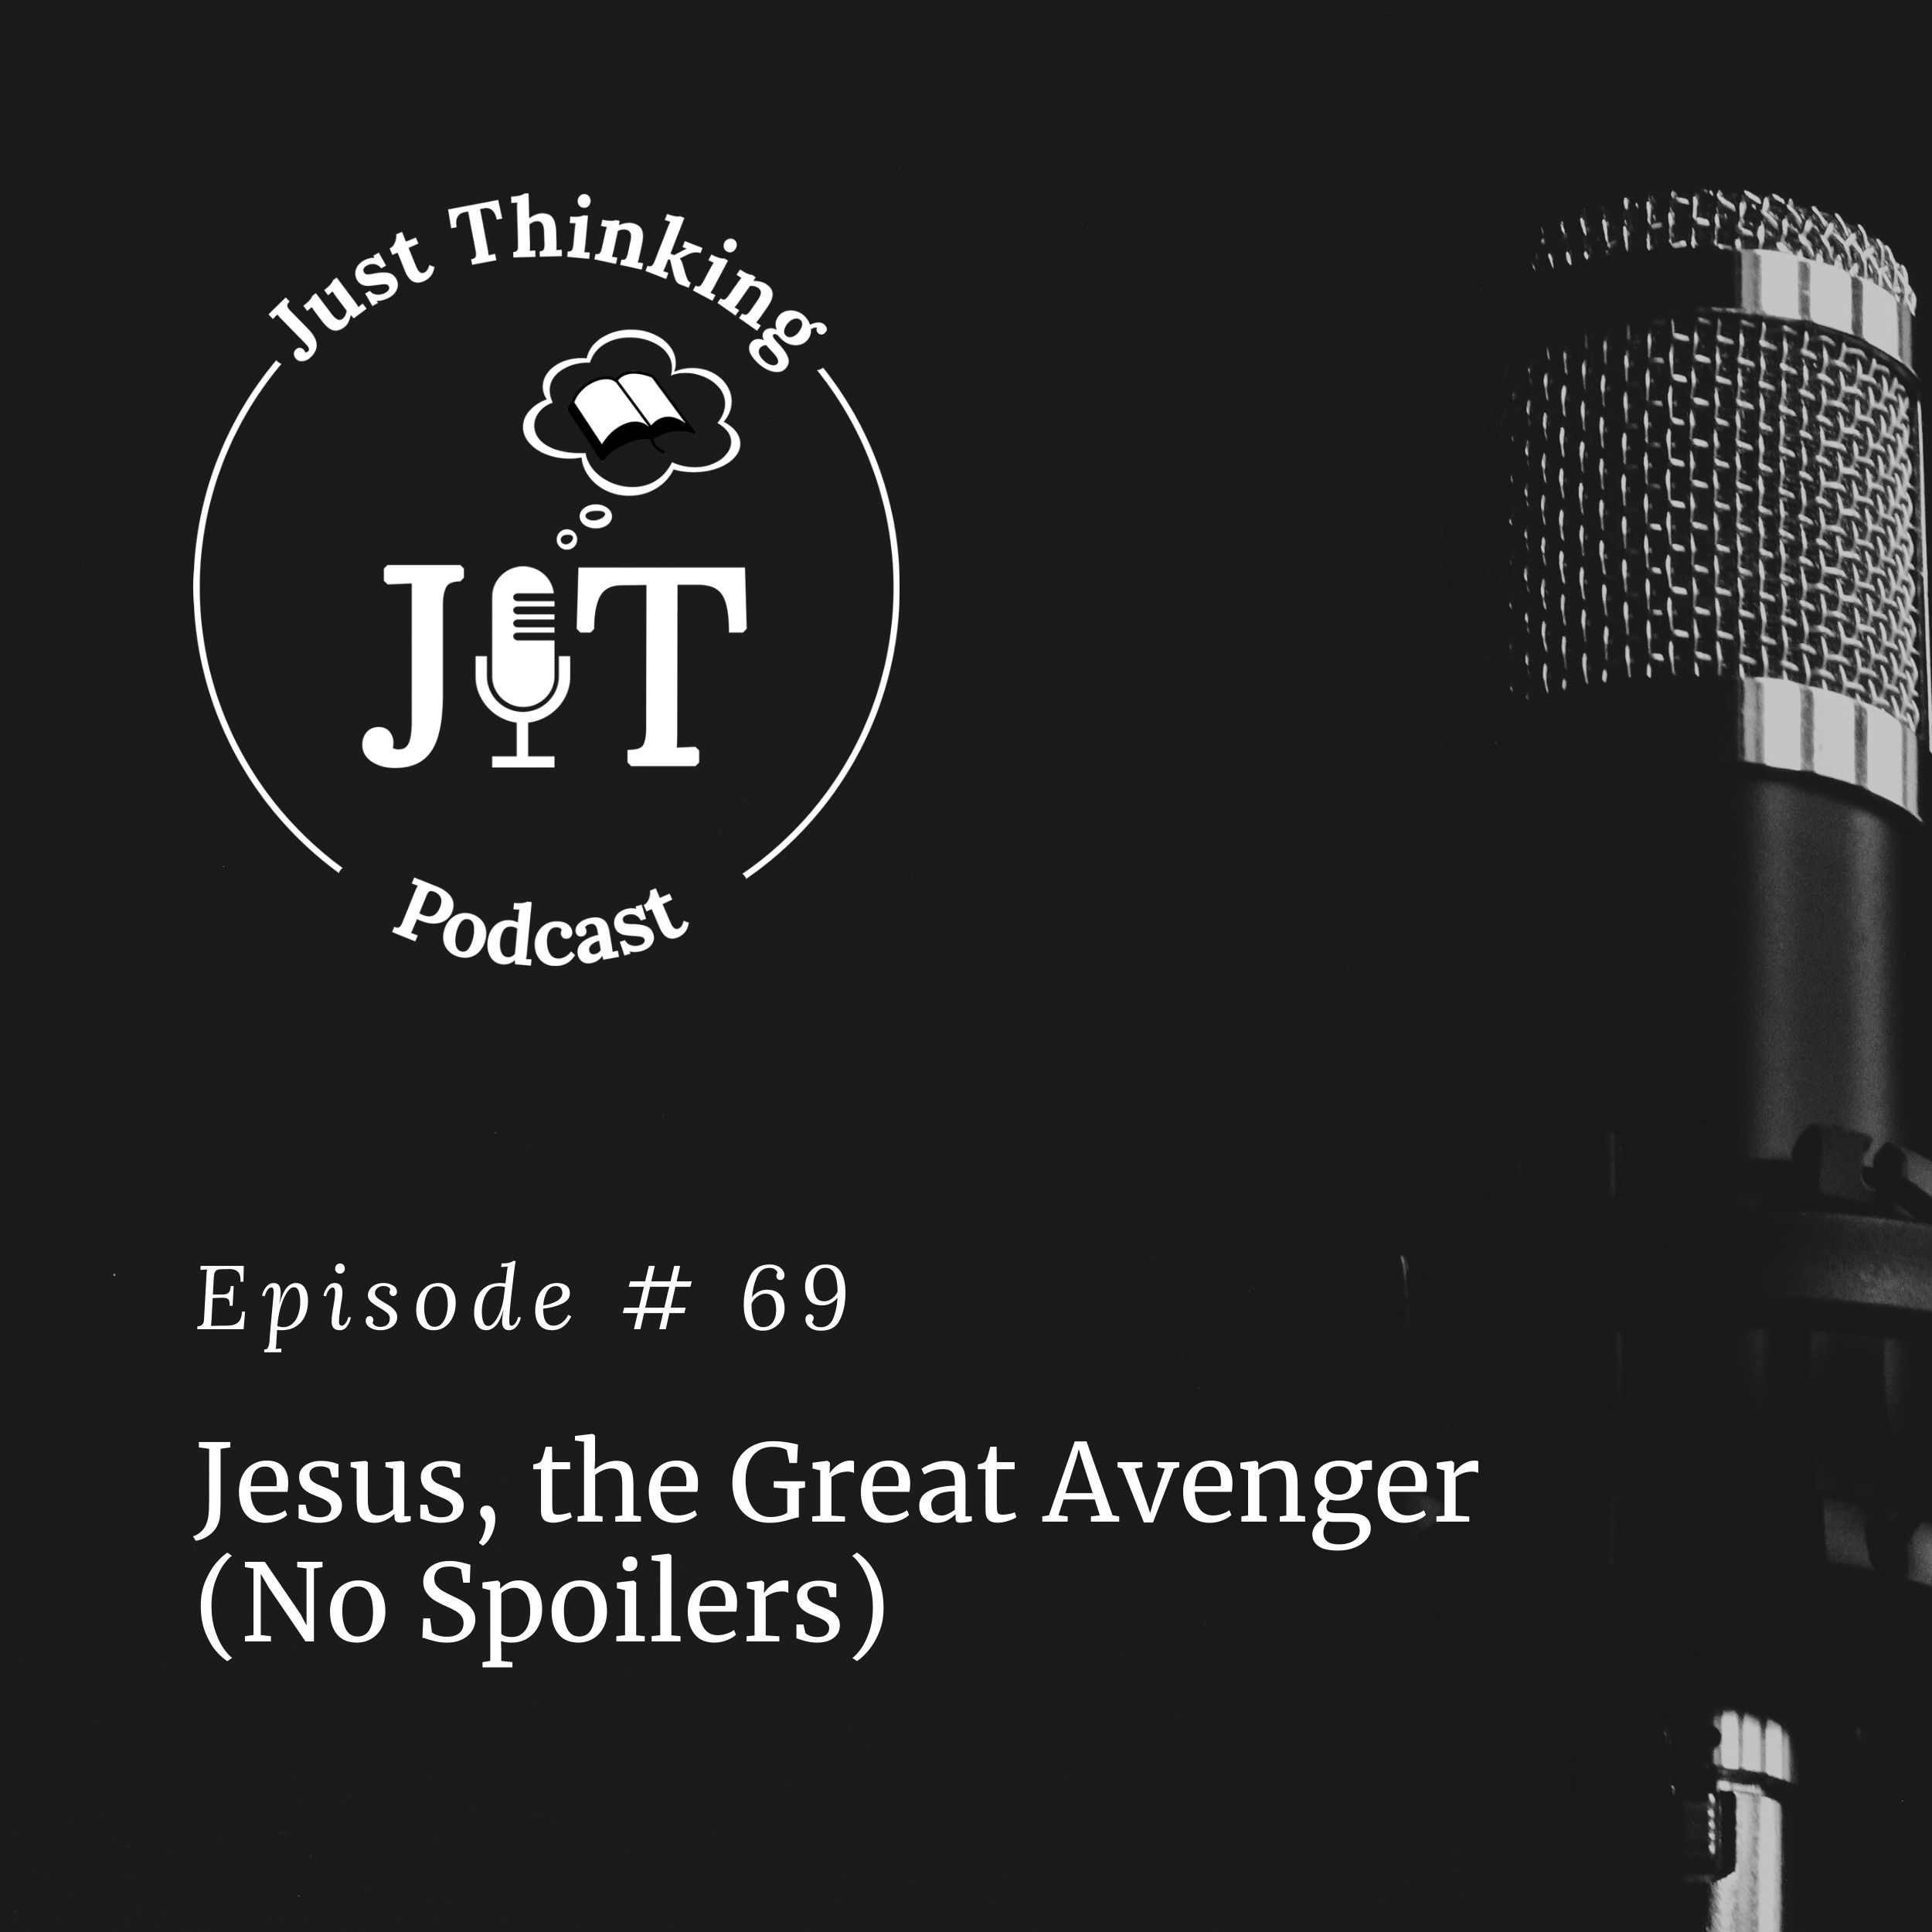 Just Thinking Podcast